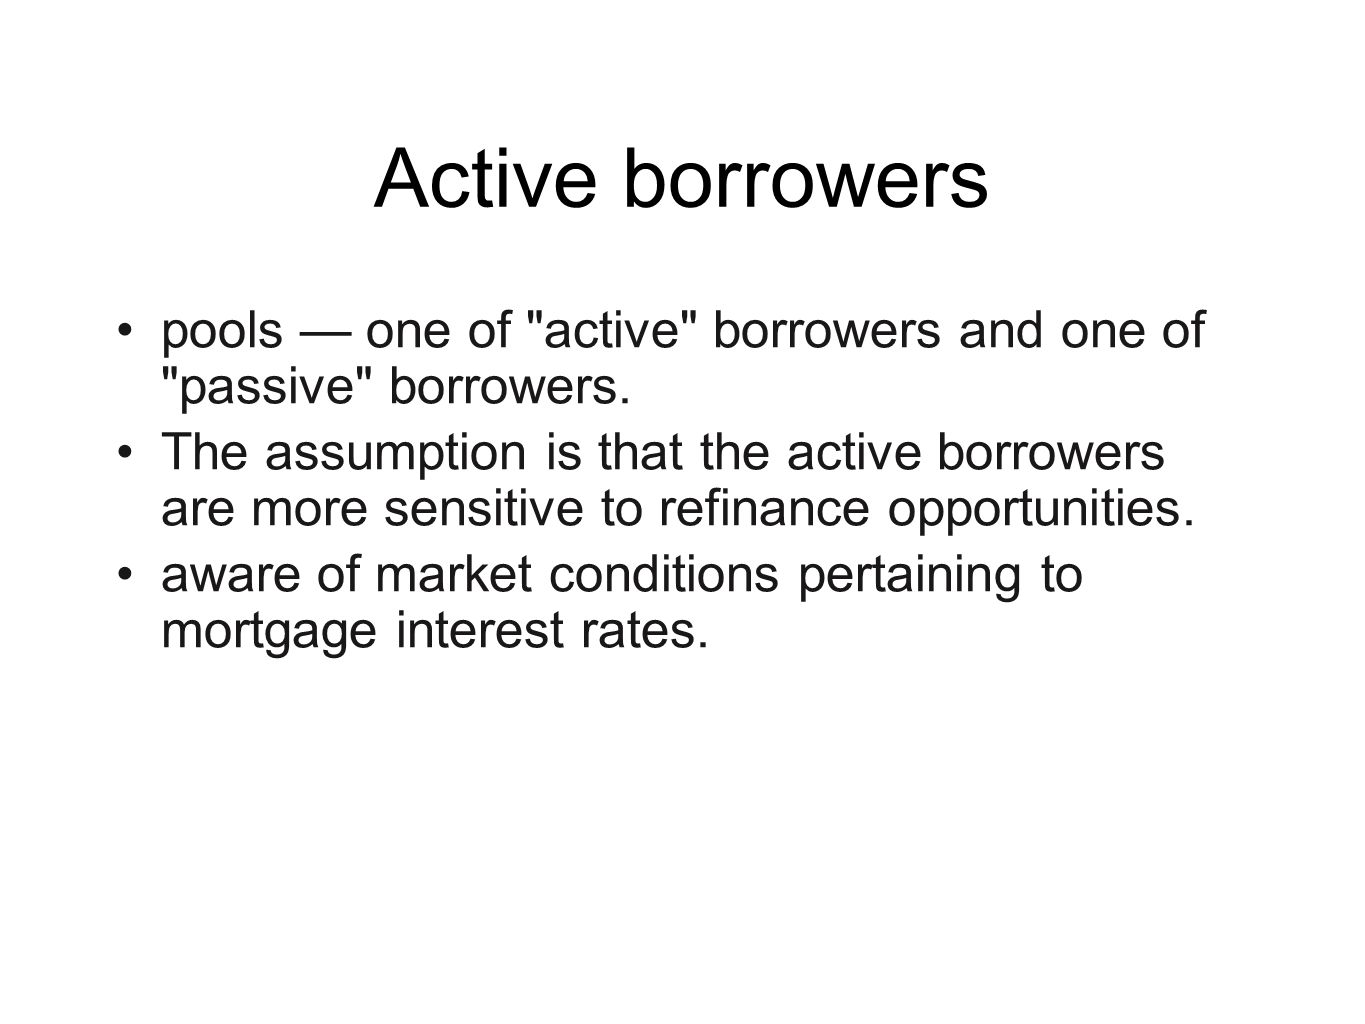 The key to successfully forecasting using APD is reliant upon accurately identify the breakdown of active and passive borrowers for a given MBS pool without knowing actual pool composition, that is, without having exact characteristics of each loan in the pool.